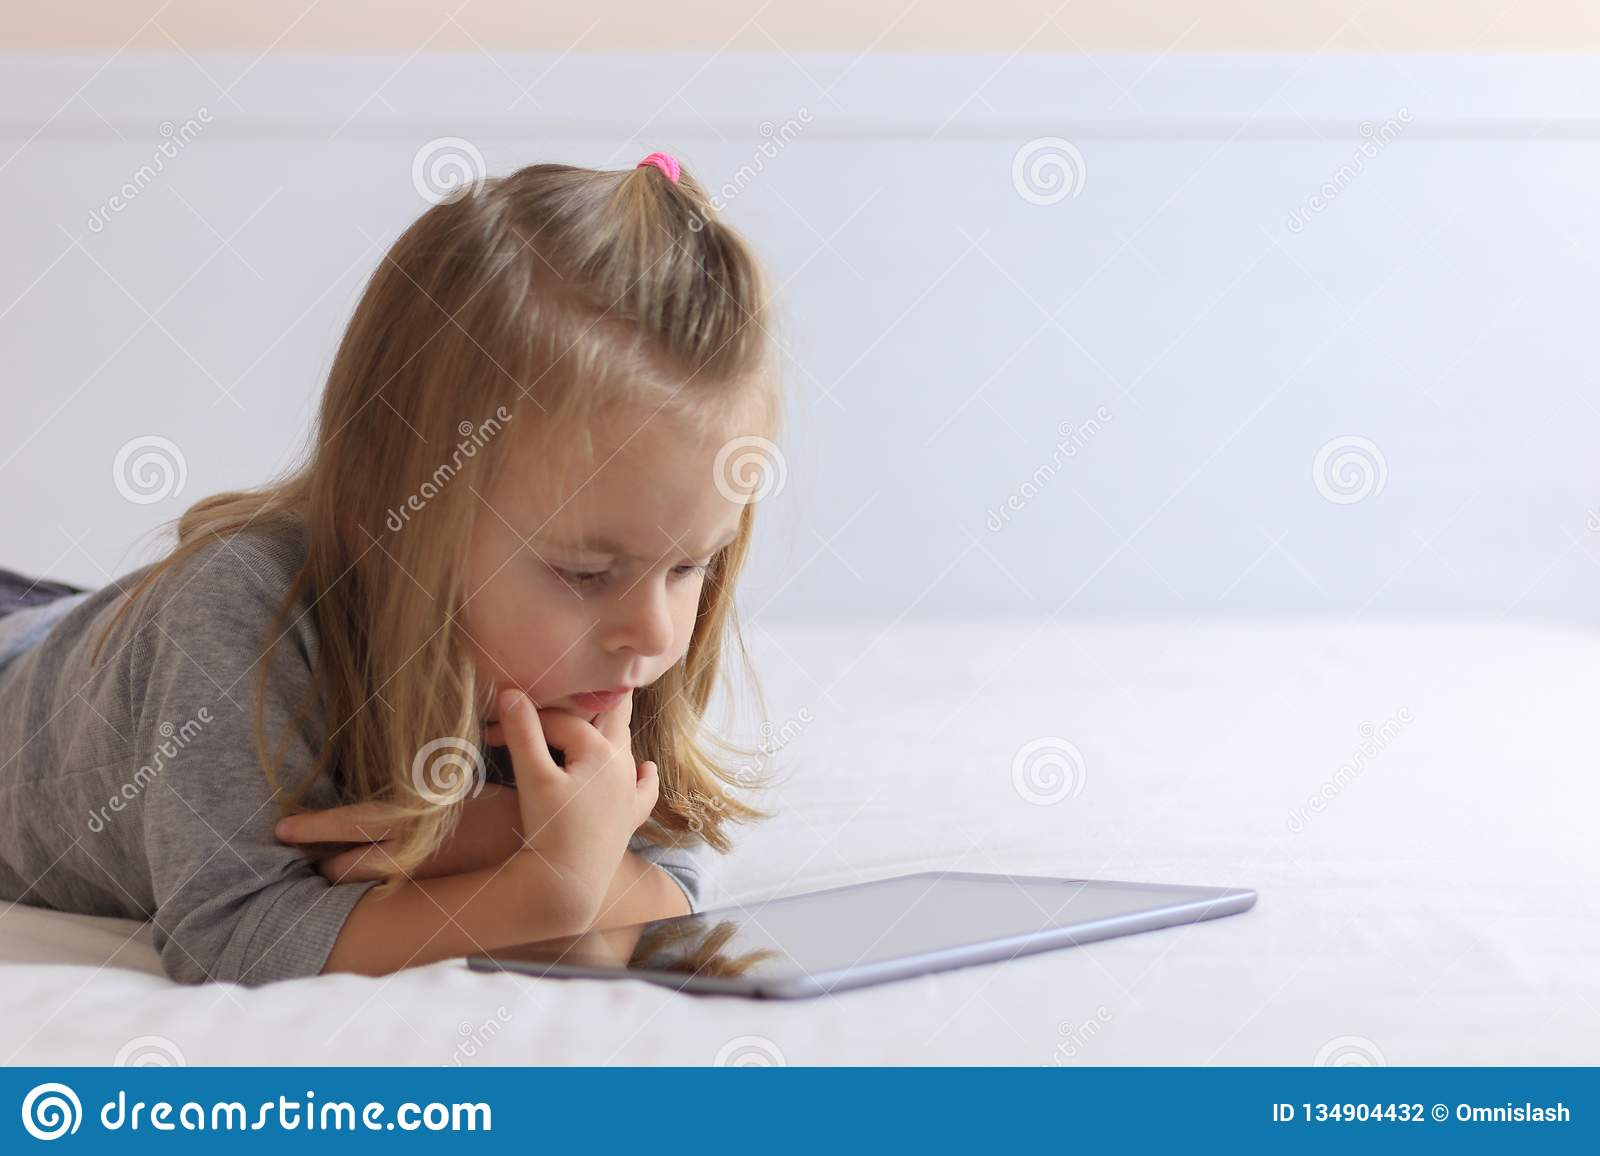 Little girl watching online streaming video while laying in bed